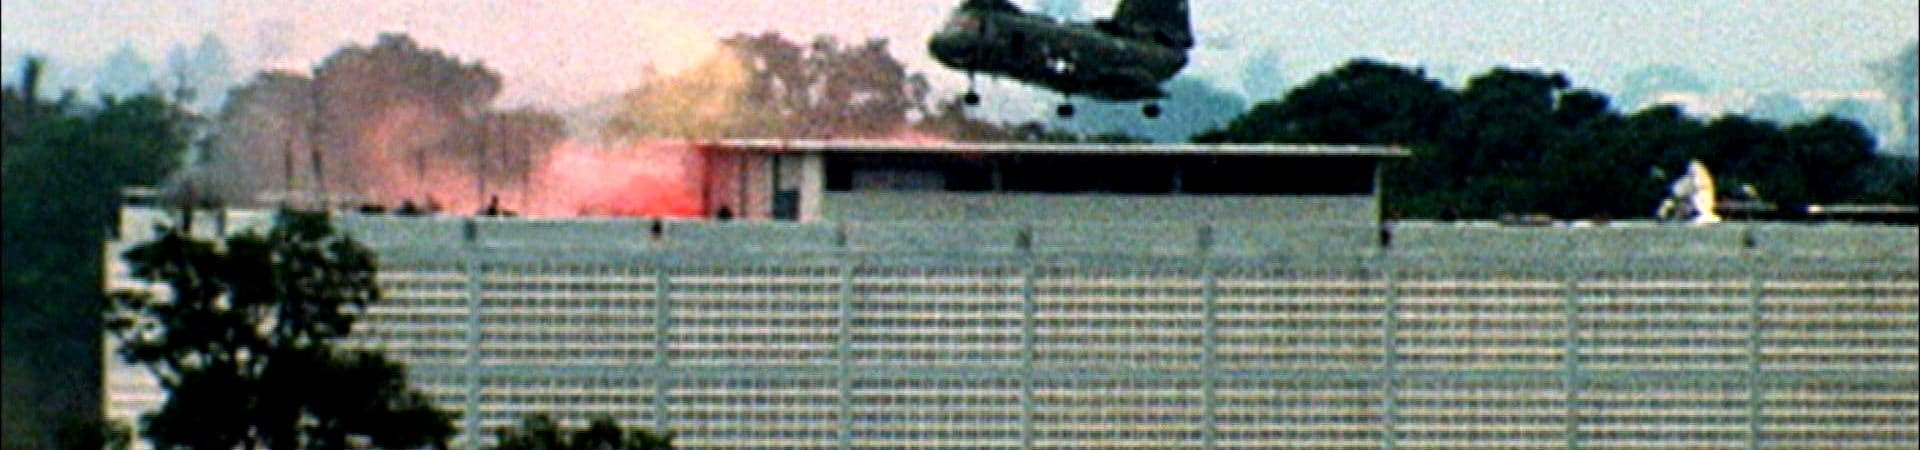 CH-46 helicopter in Saigon rescue